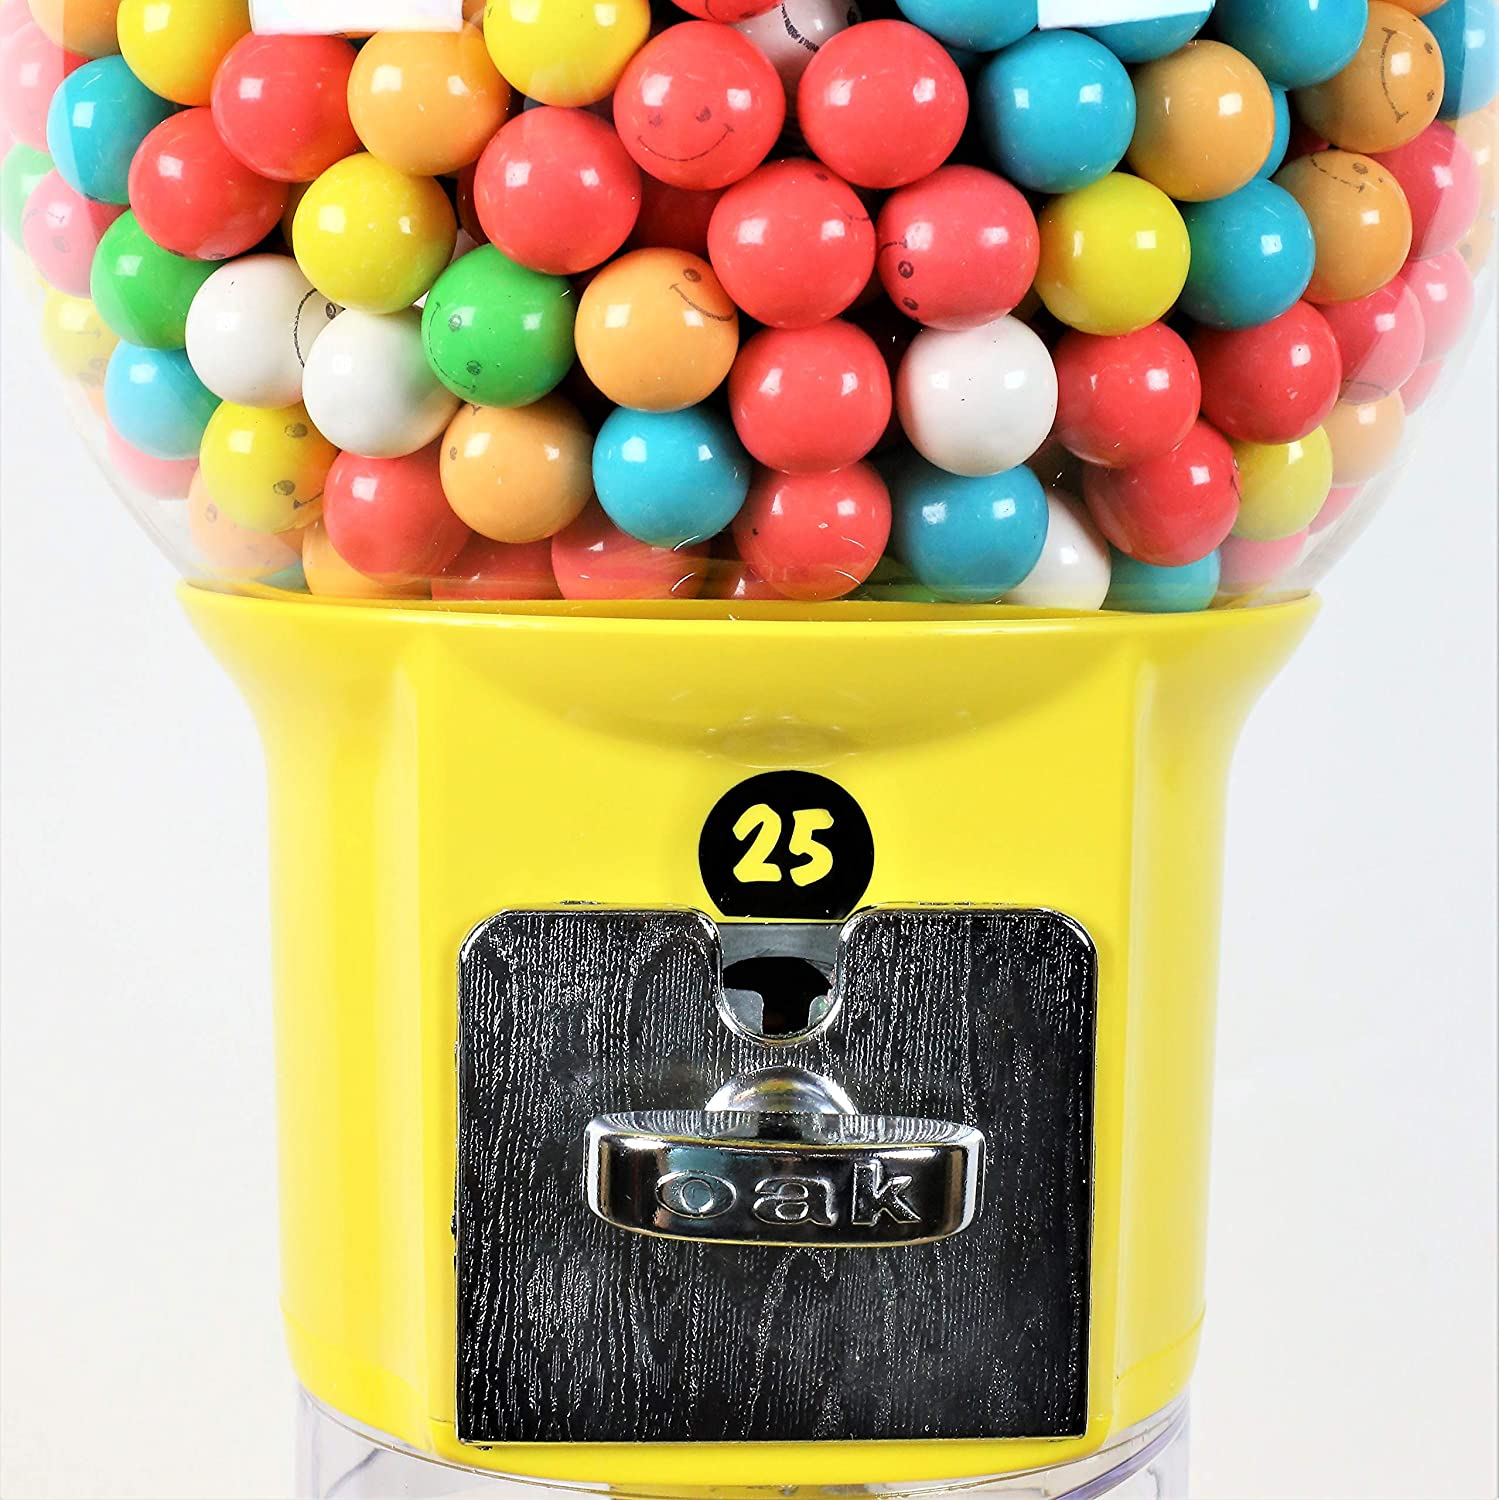 """Gumball Machine 27/"""" Set Up for $0.25 Gumballs 1 inch Toys in Round Capsules 1 Bouncy Balls 25 mm BLUE Spiral Vending Gum Machine Great Gumball Machines Gift for Kids Bubble Gum Machine Without Stand"""